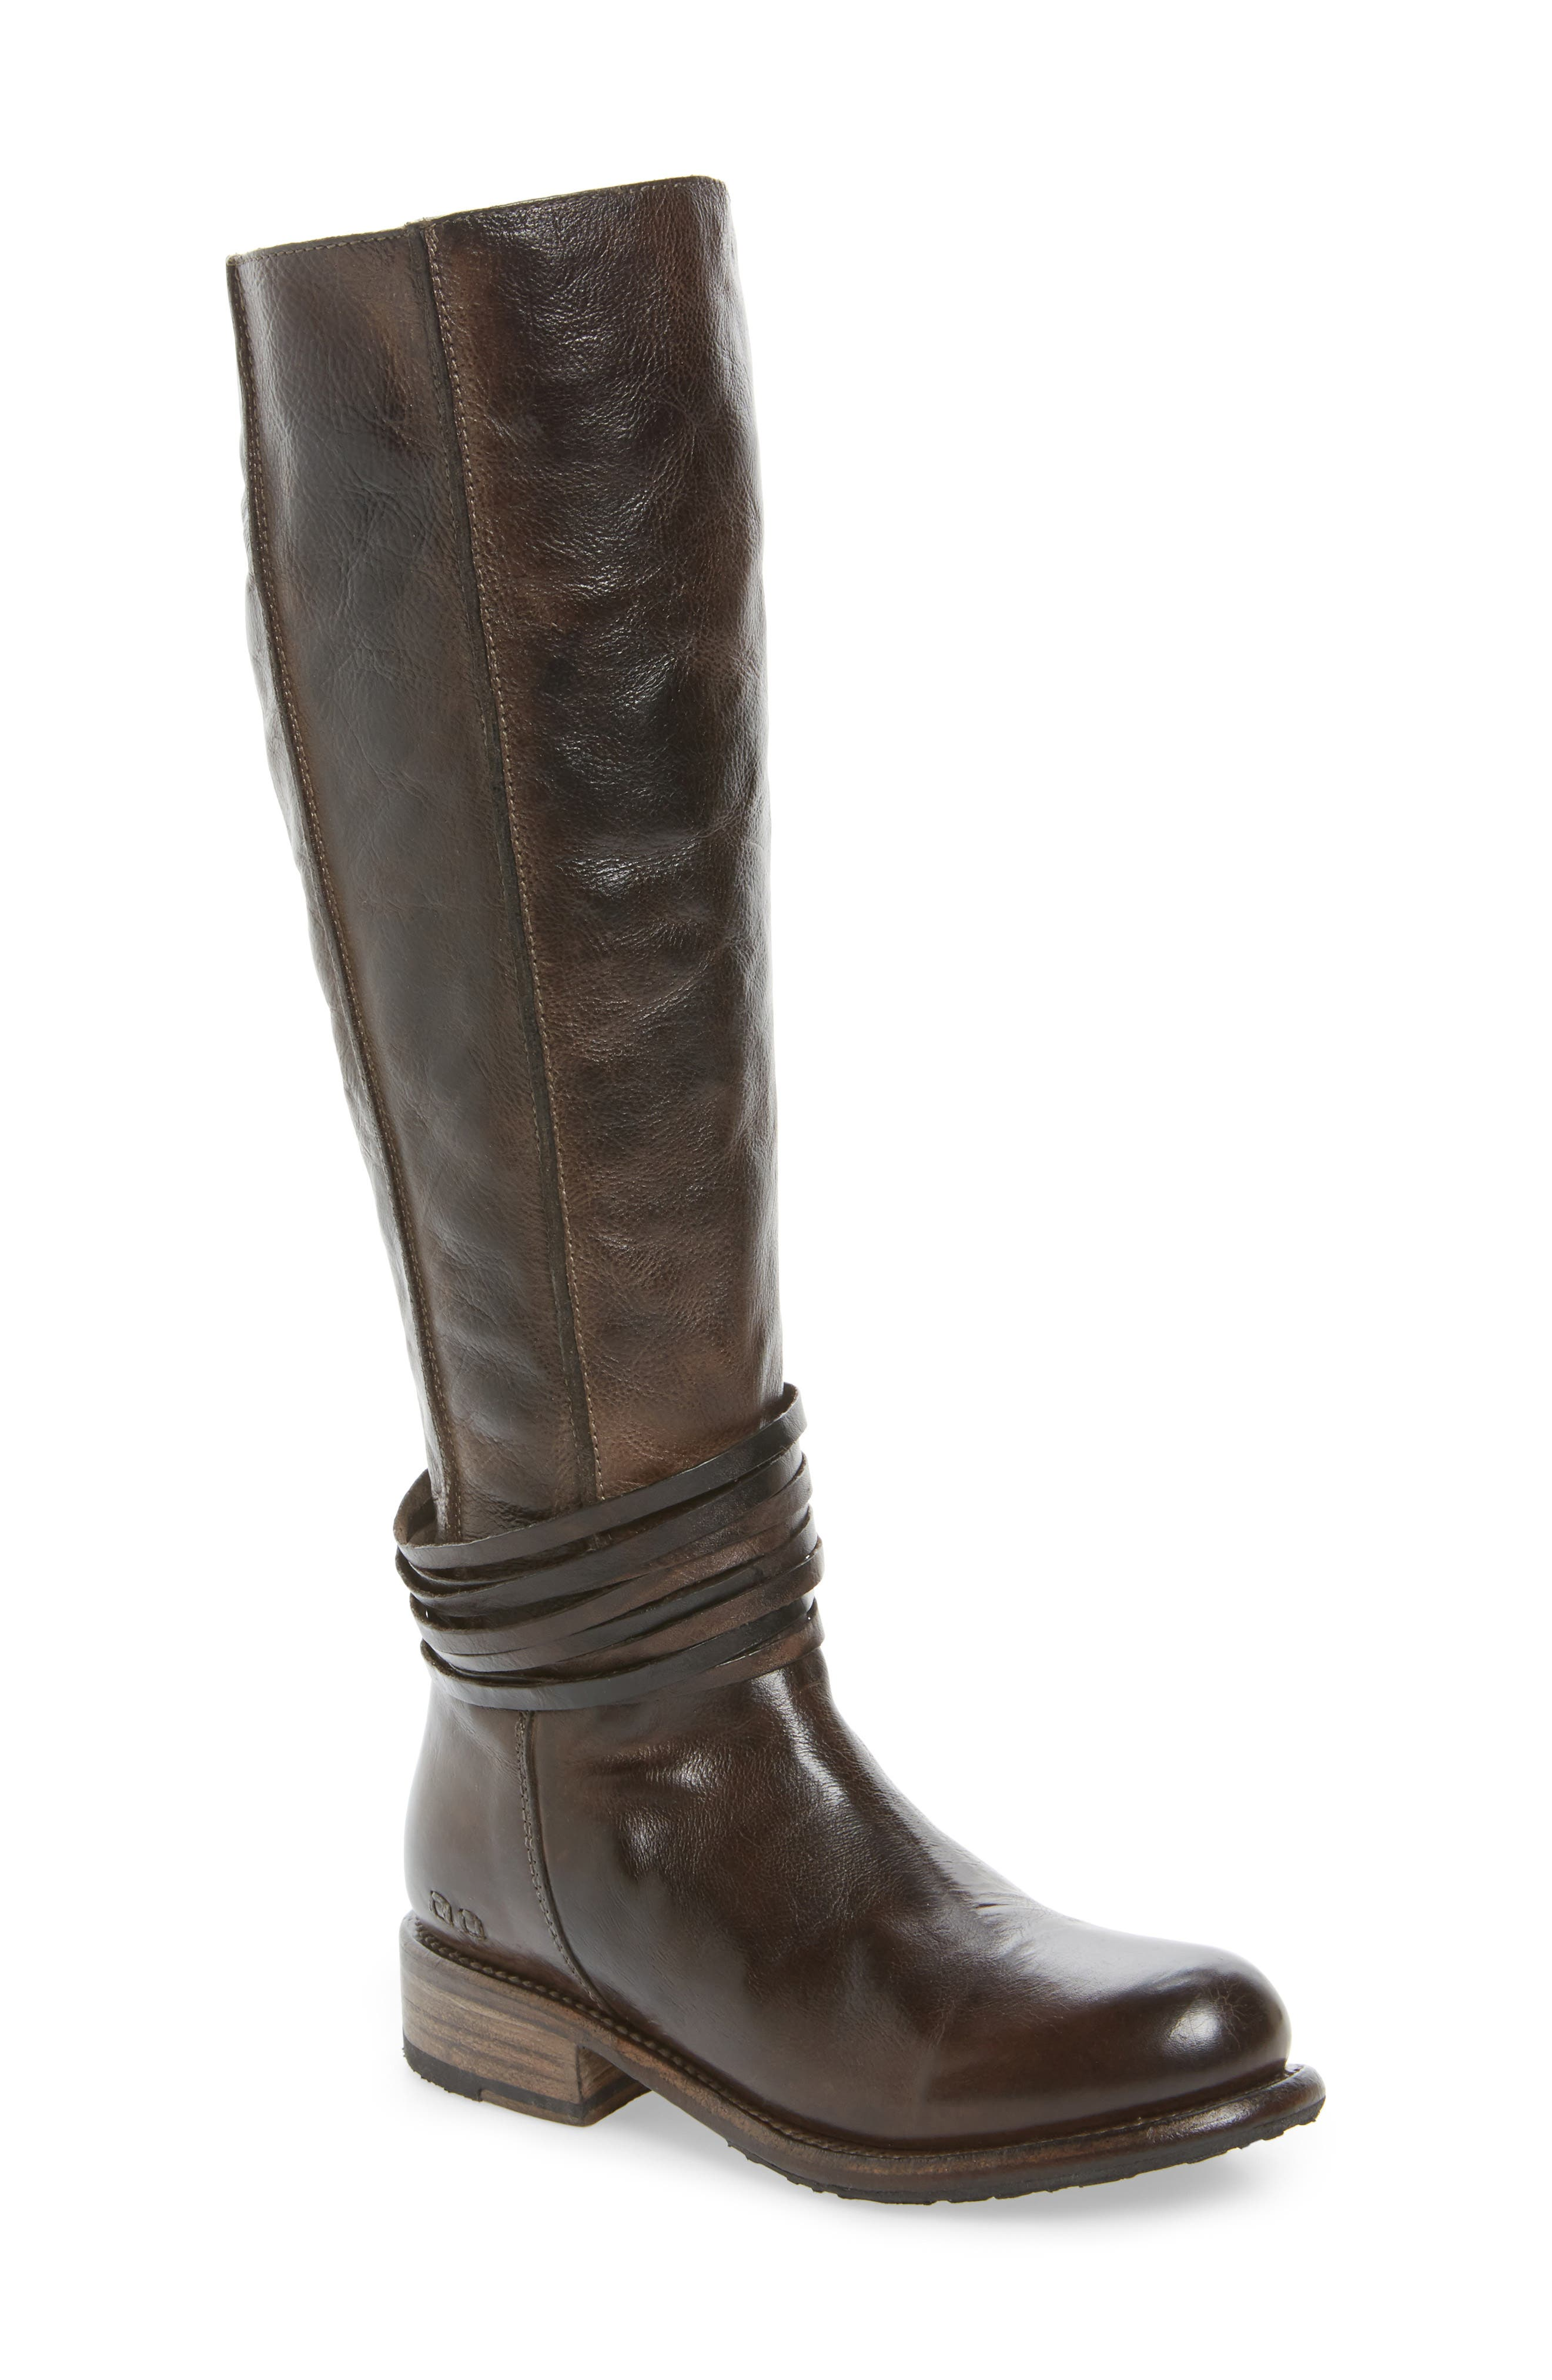 Alternate Image 1 Selected - Bed Stu Weymouth Knee High Boot (Women)